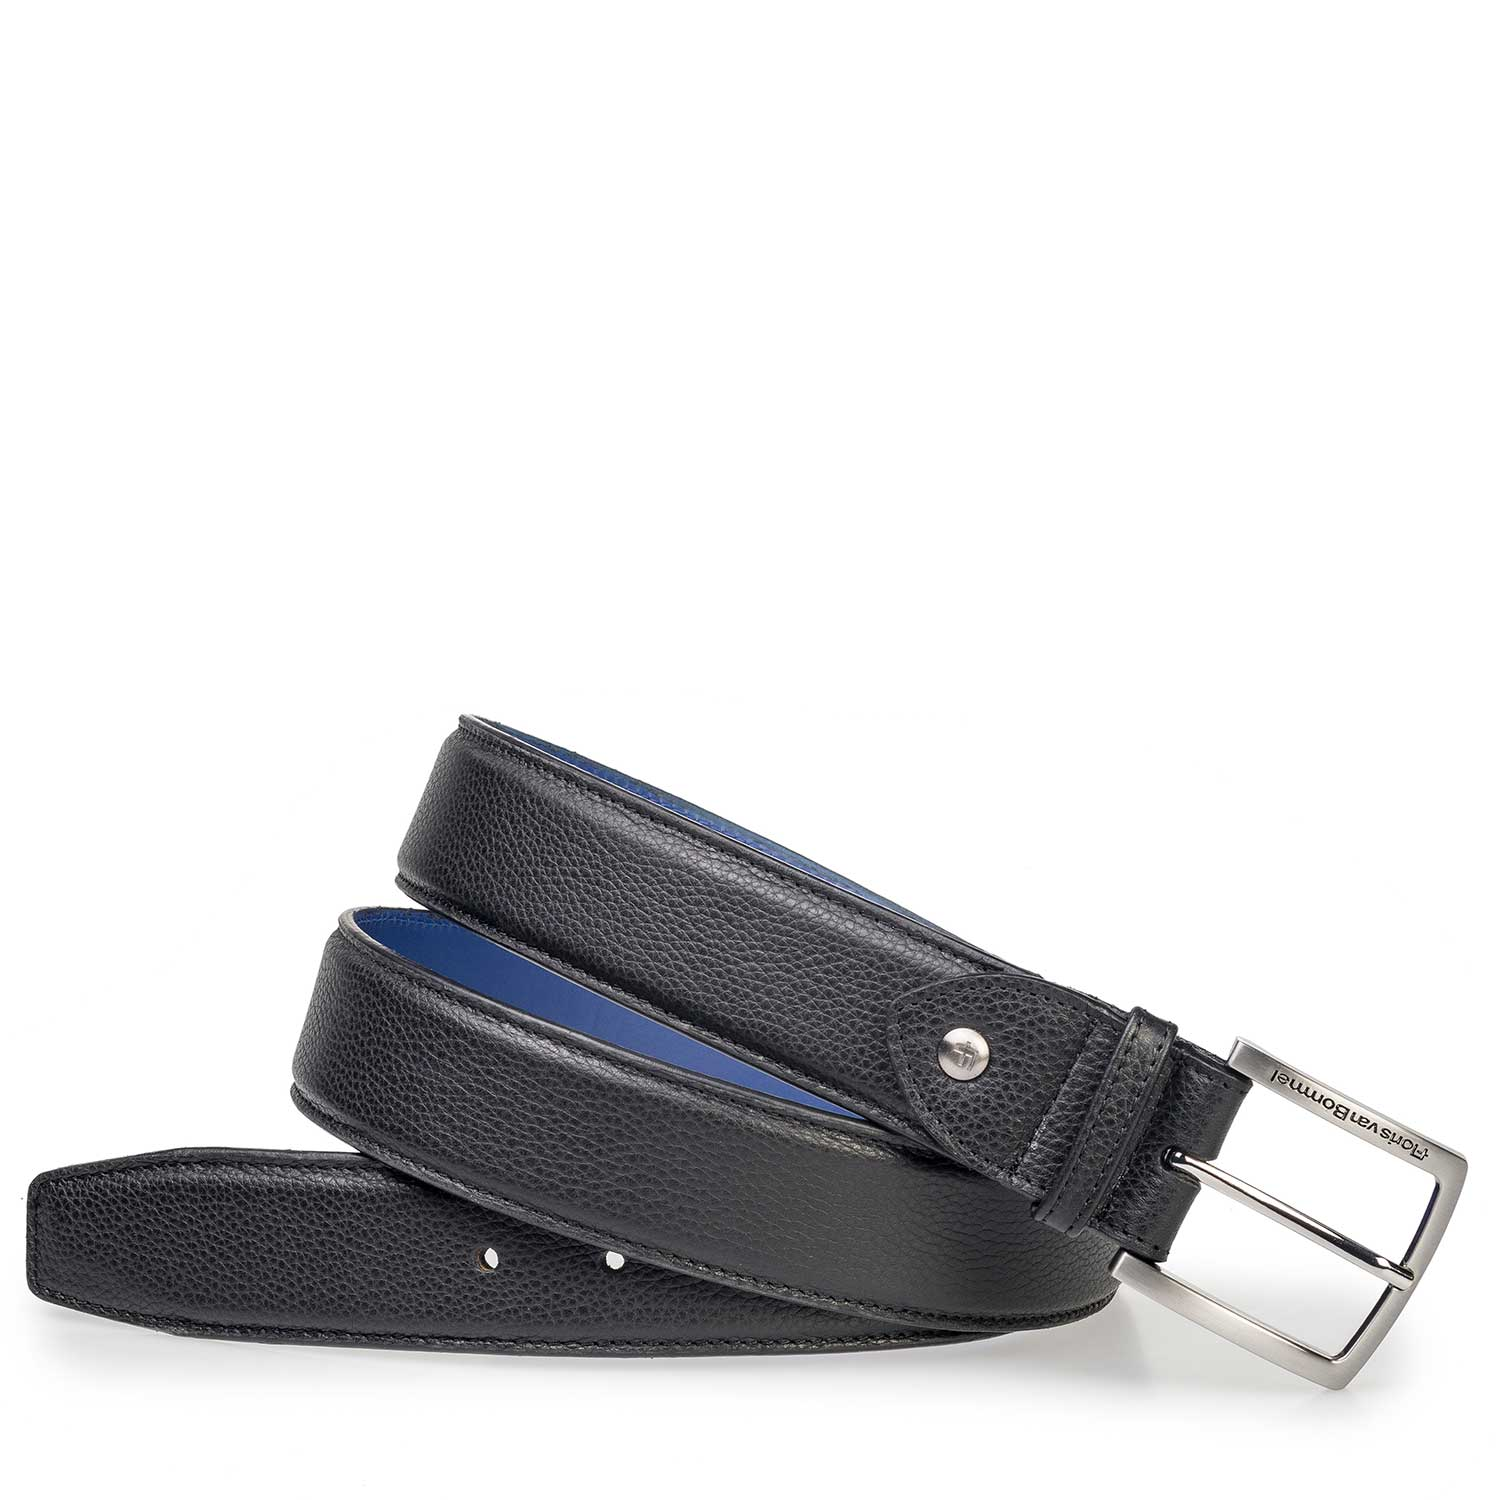 75189/64 - Black leather belt with a structural pattern